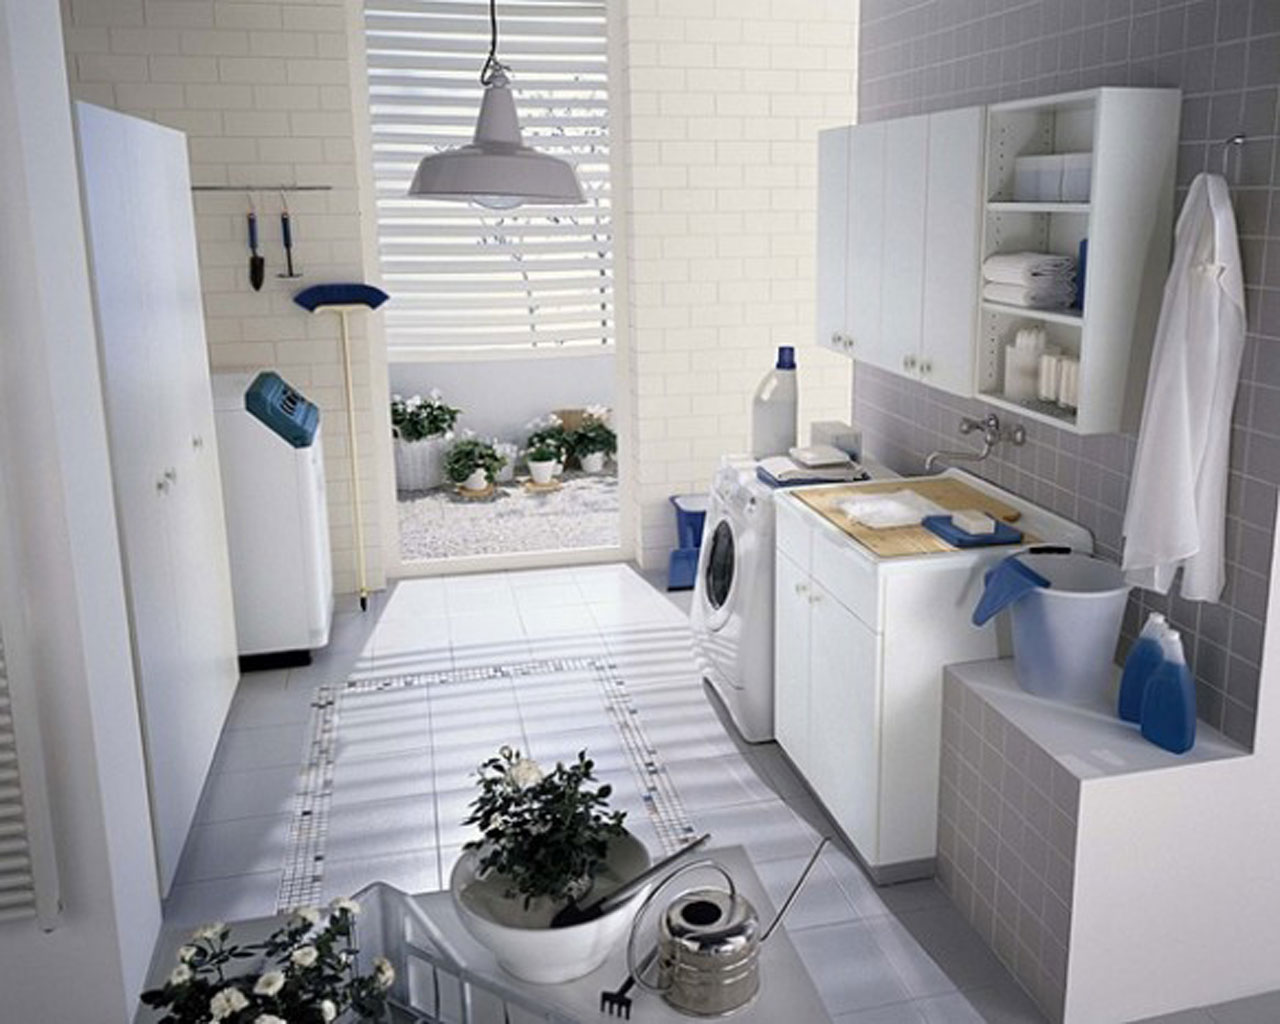 Laundry room layout best layout room Laundry room design